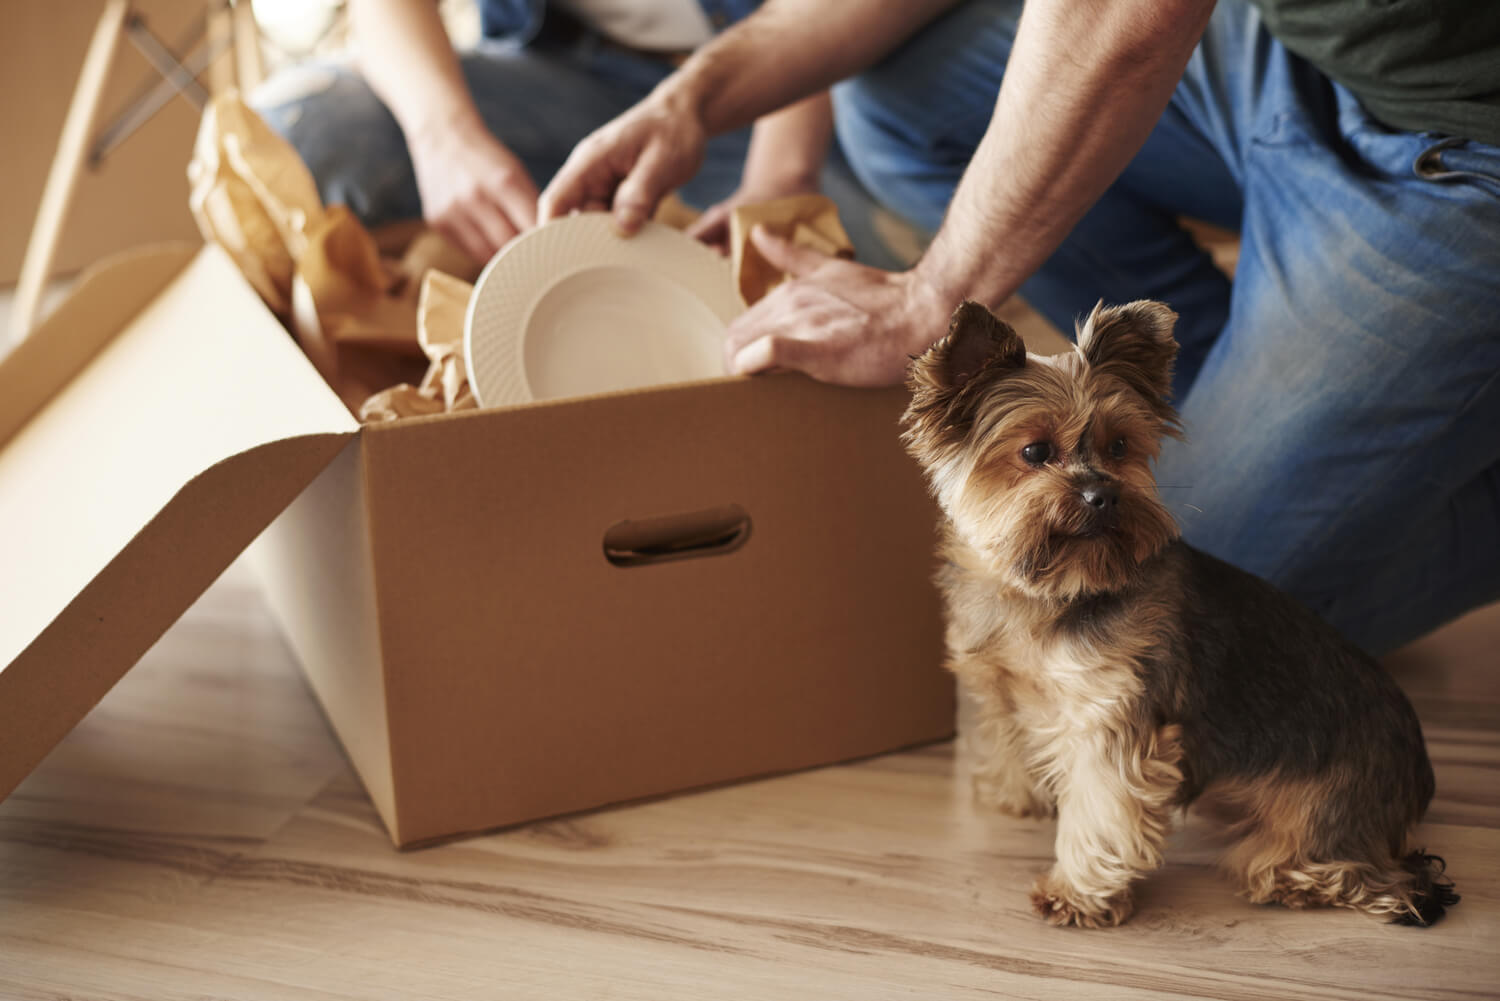 couple packing boxes - property management technology